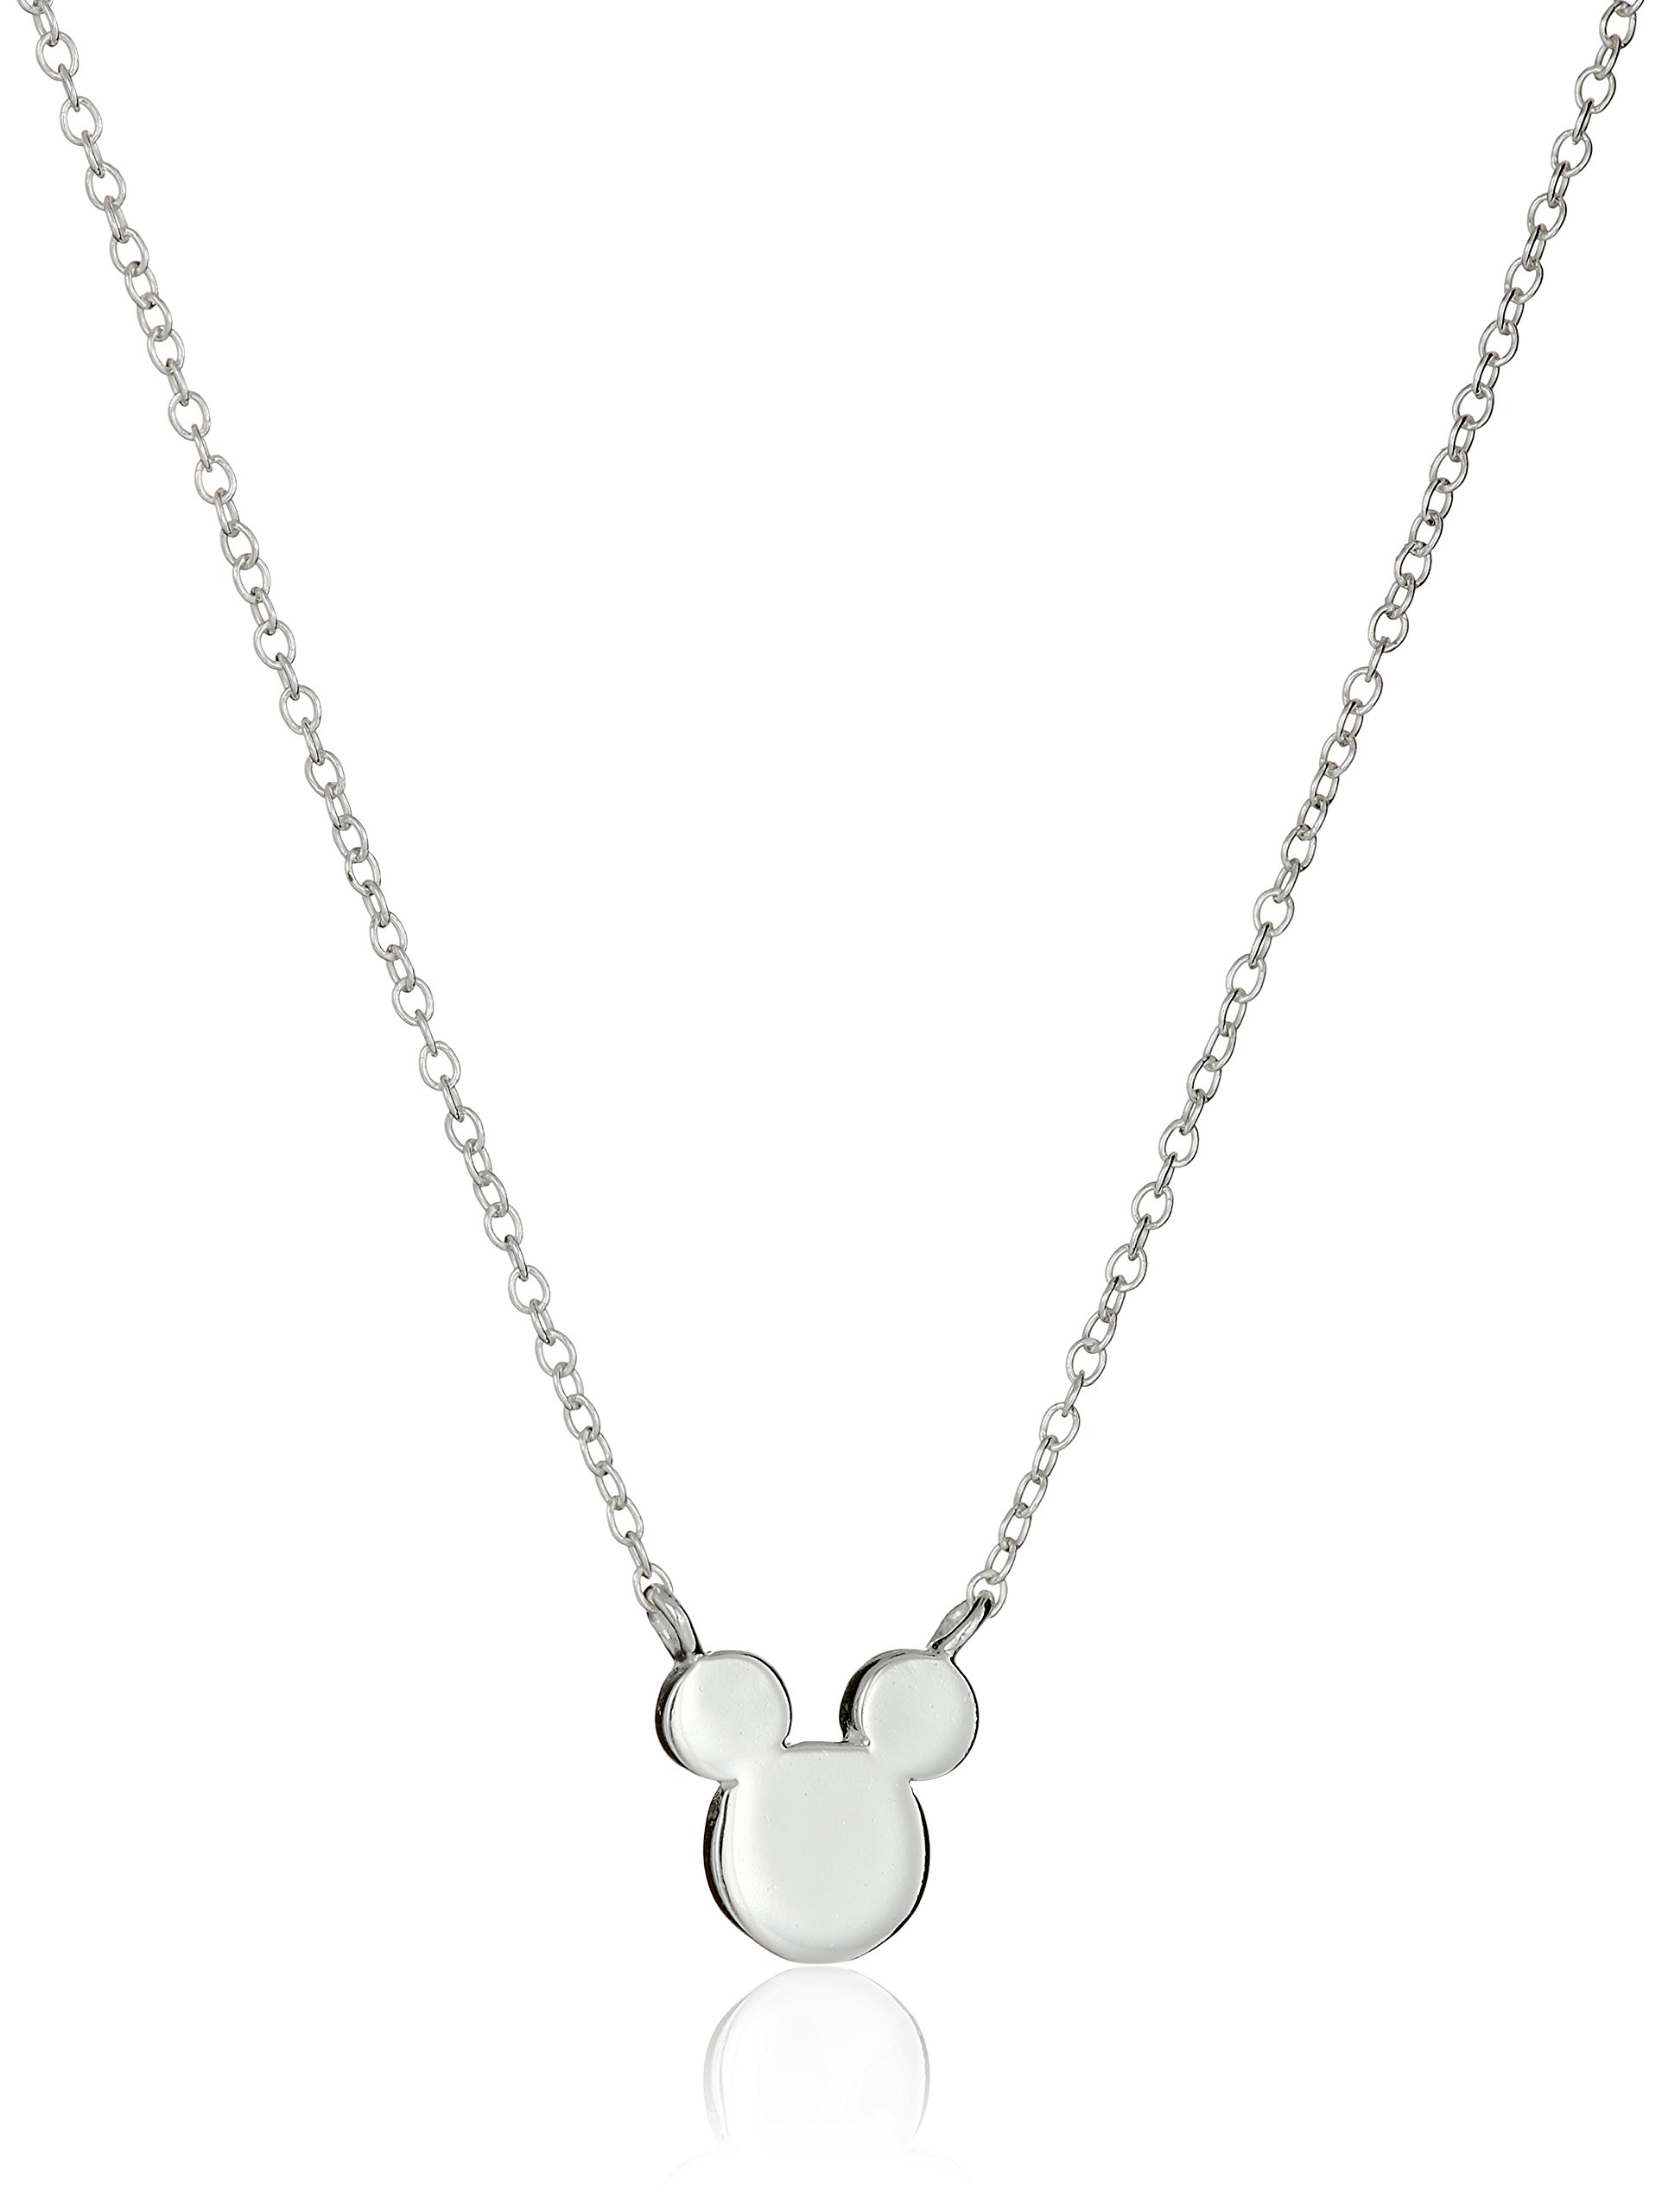 Disney Sterling Silver Mickey Mouse Silhouette Pendant Necklace, 16''+2'' Extender